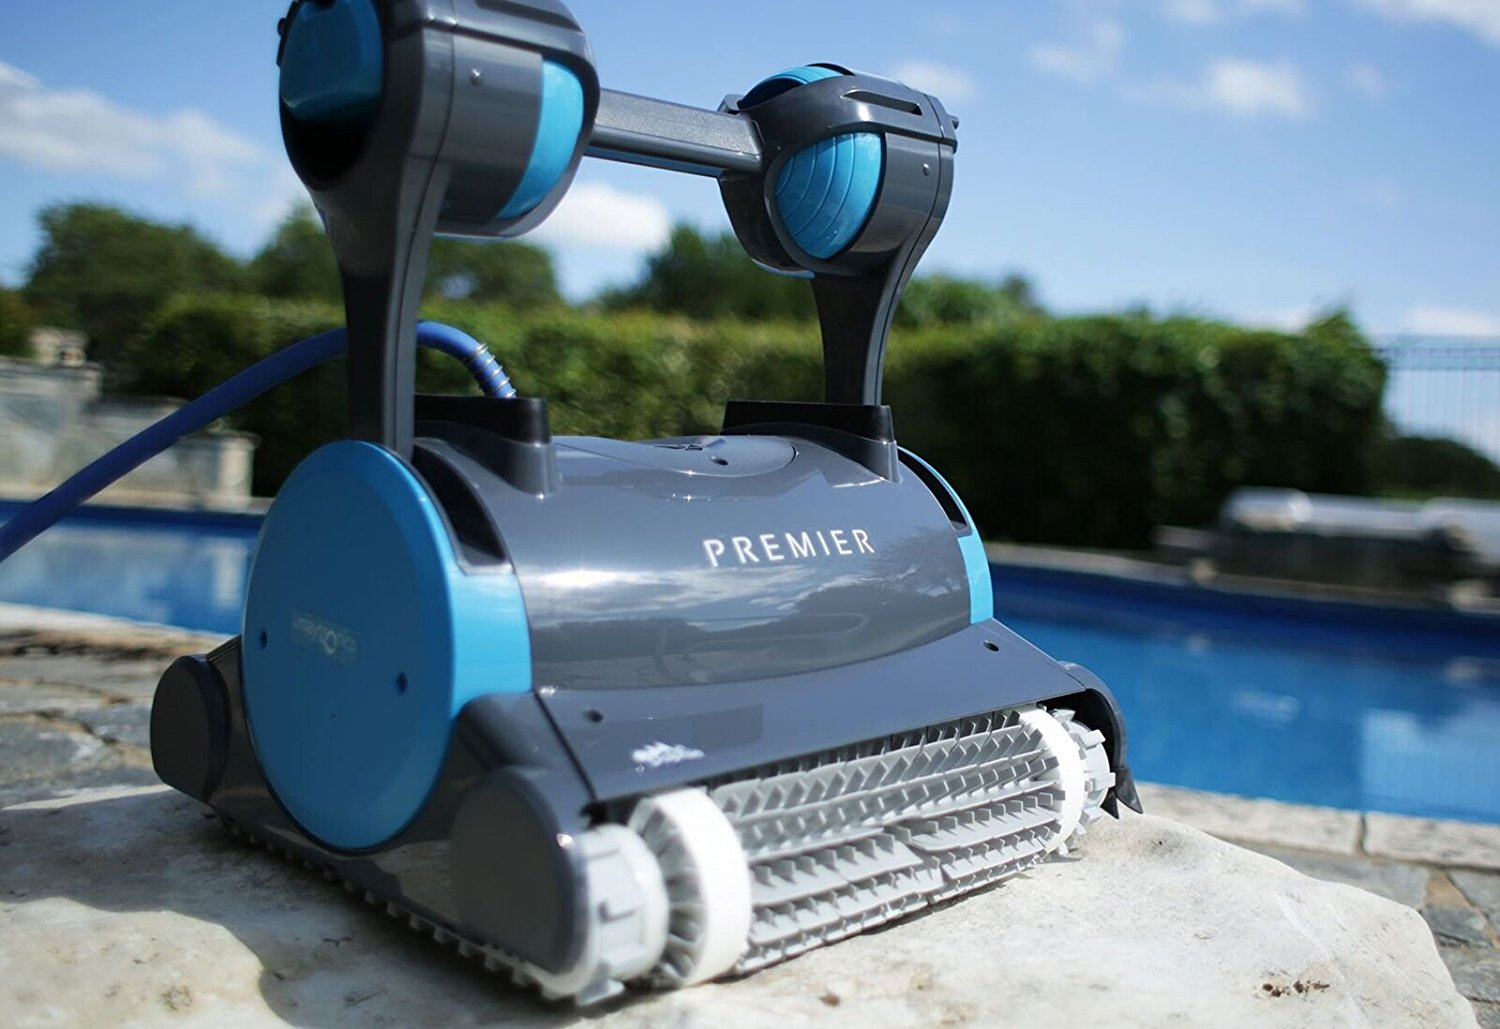 2018 Dolphin Premier Robotic In Ground Pool Cleaner Pool